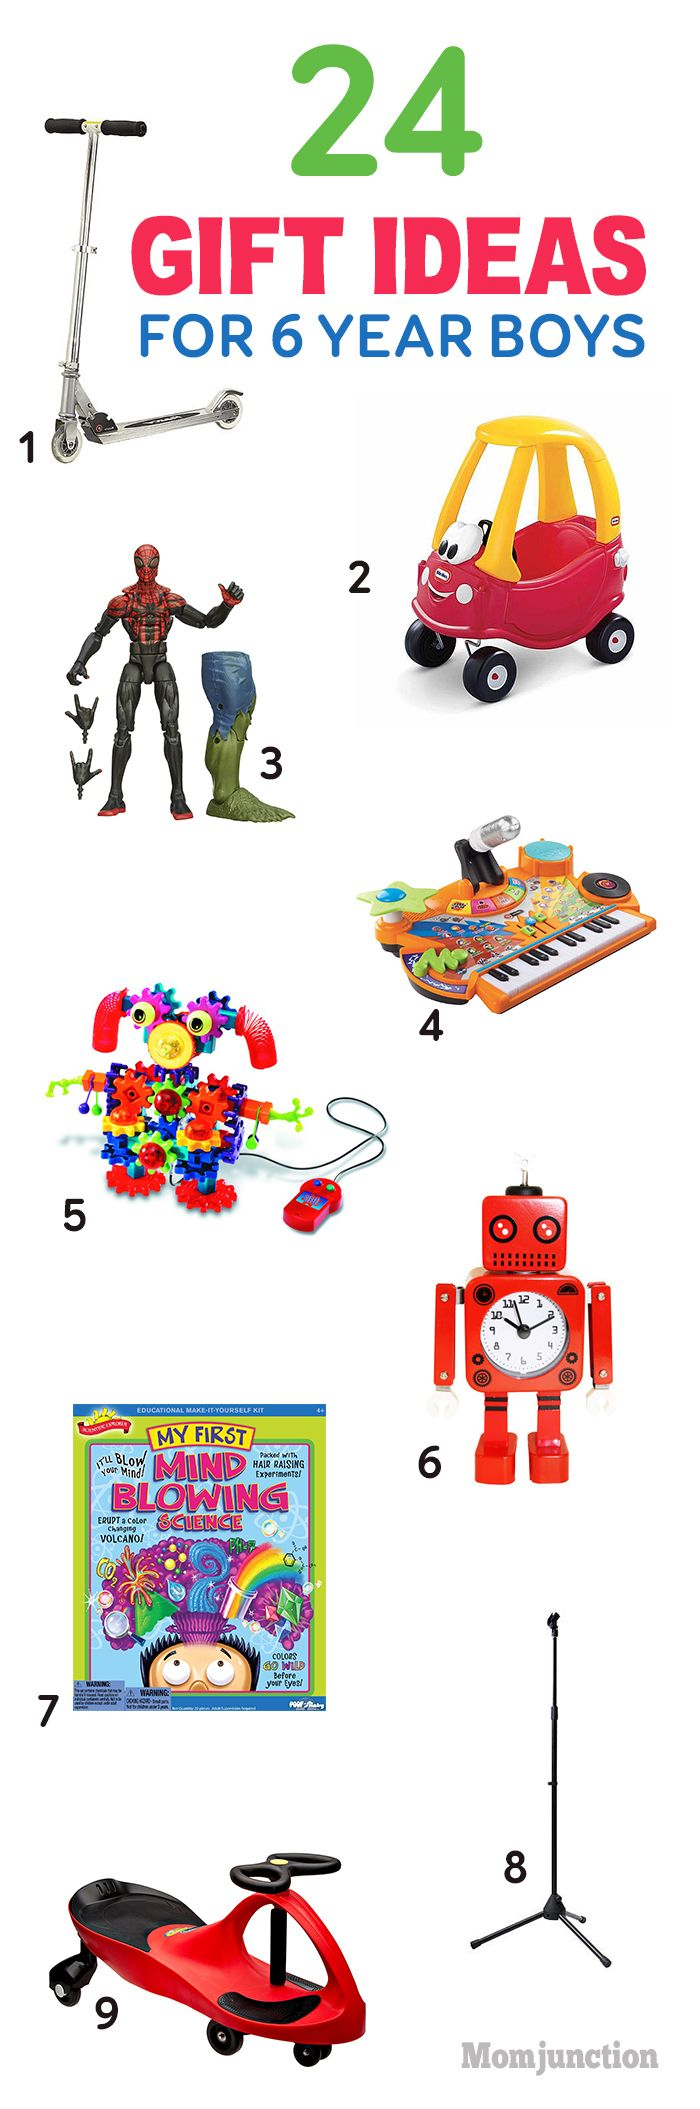 Popular Toys For Boys Age 10 : Best images about gift guide on pinterest age tag